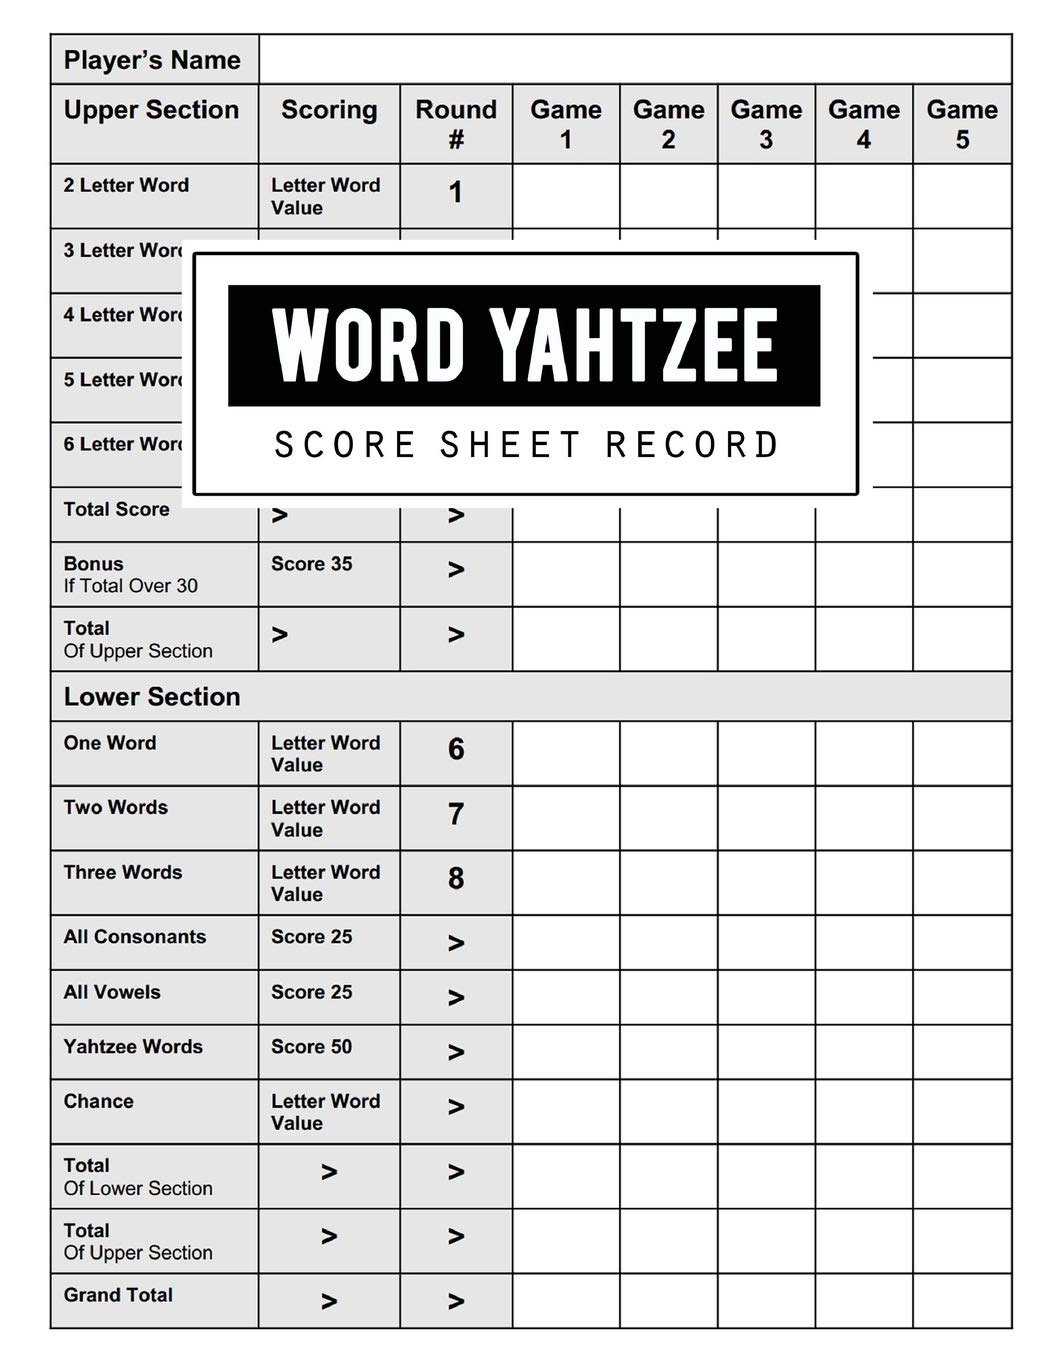 picture about Yahtzee Score Card Printable referred to as Phrase Yahtzee Ranking Historical past: Term Yahtzee Match History Keeper